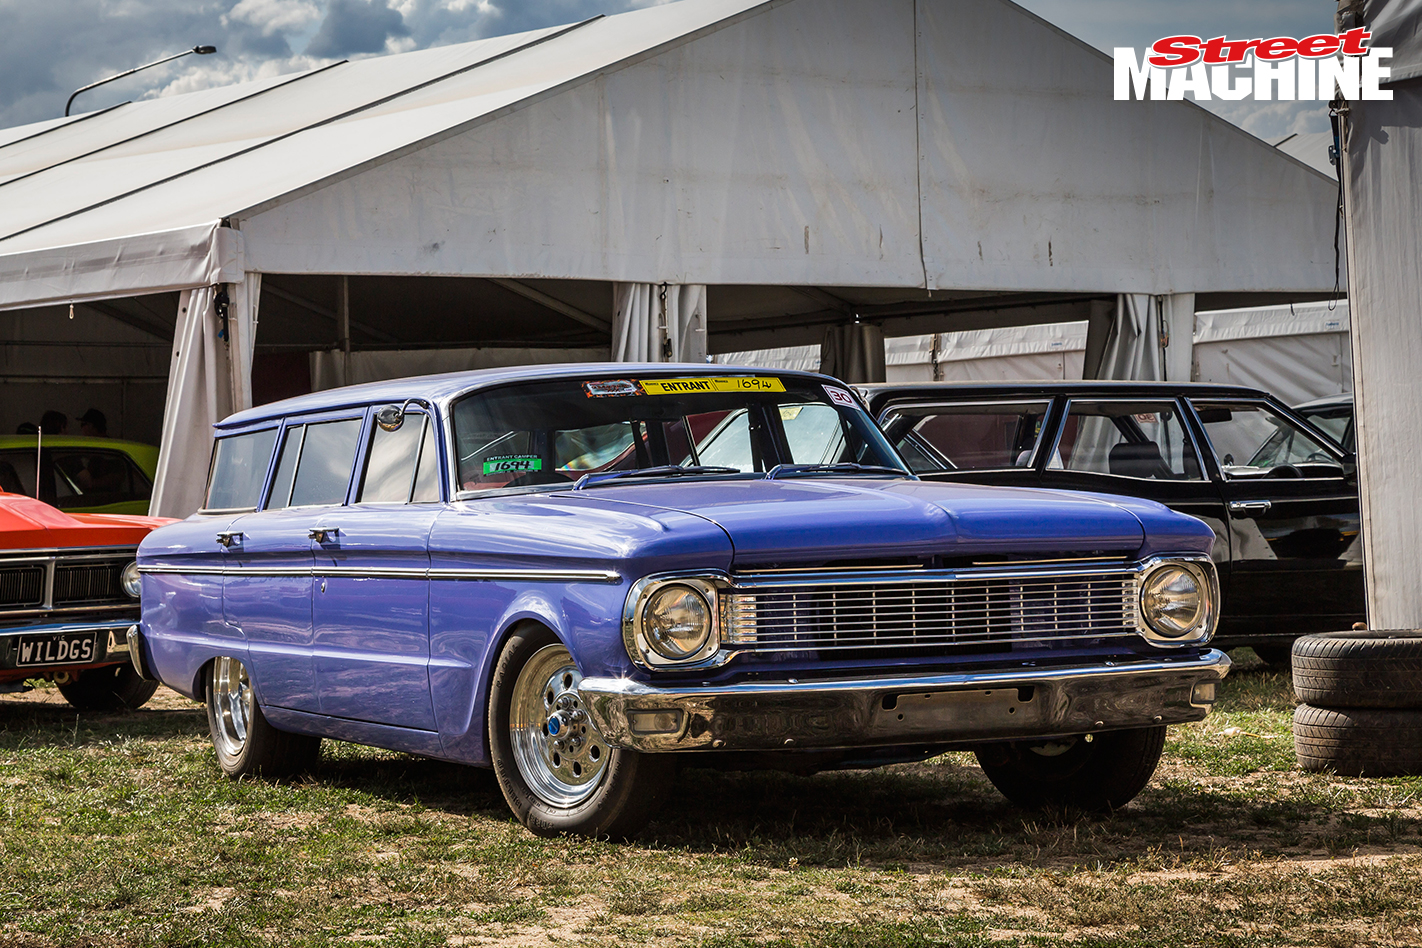 Ford Falcon wagon chopped